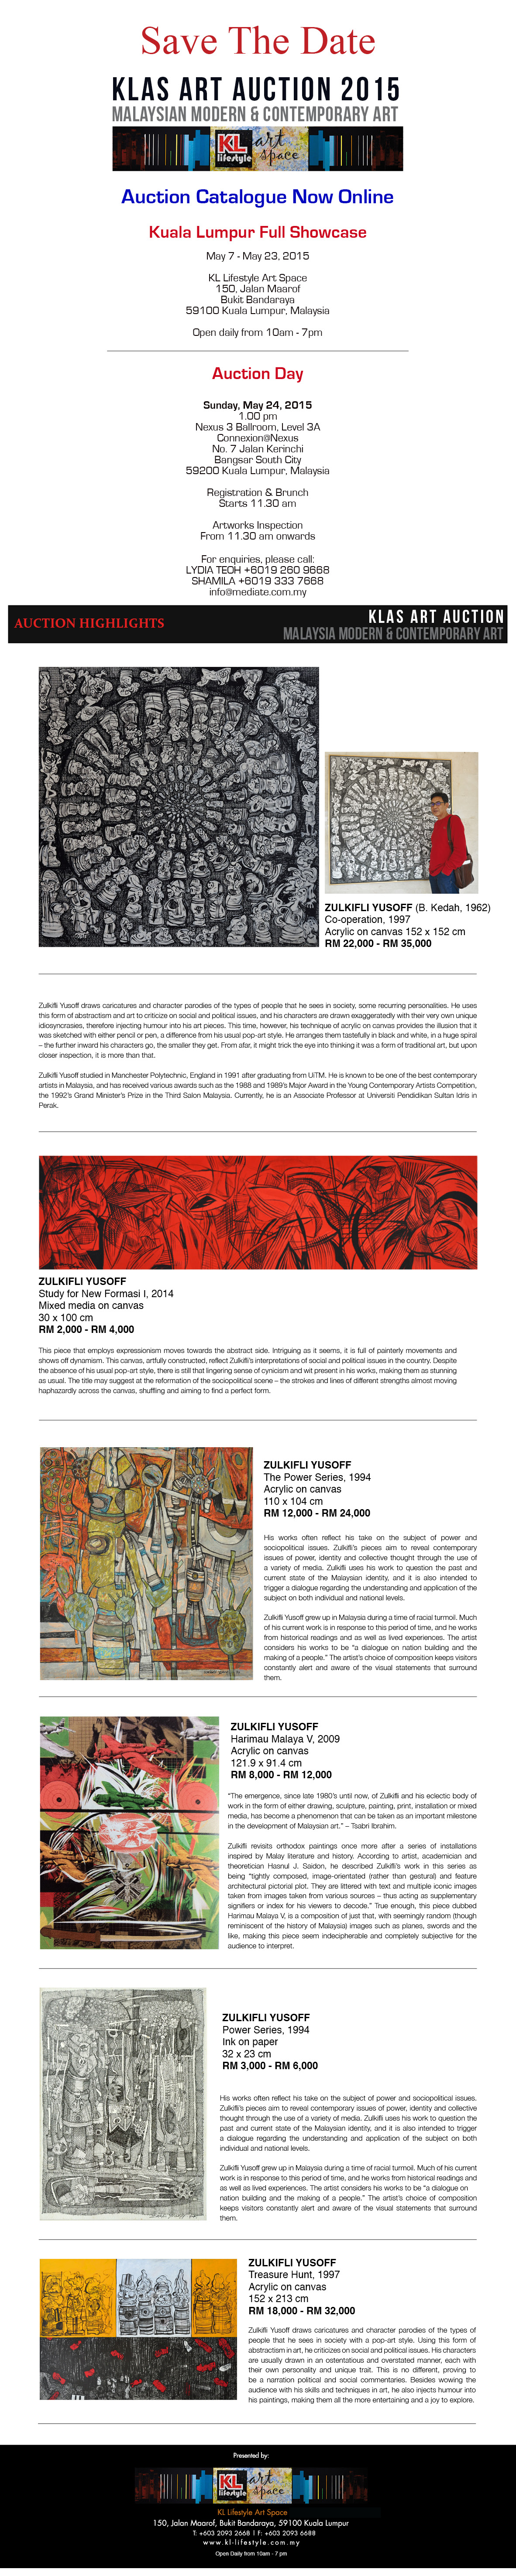 KLAS ART AUCTION EDITION XV CATALOGUE NOW ONLINE